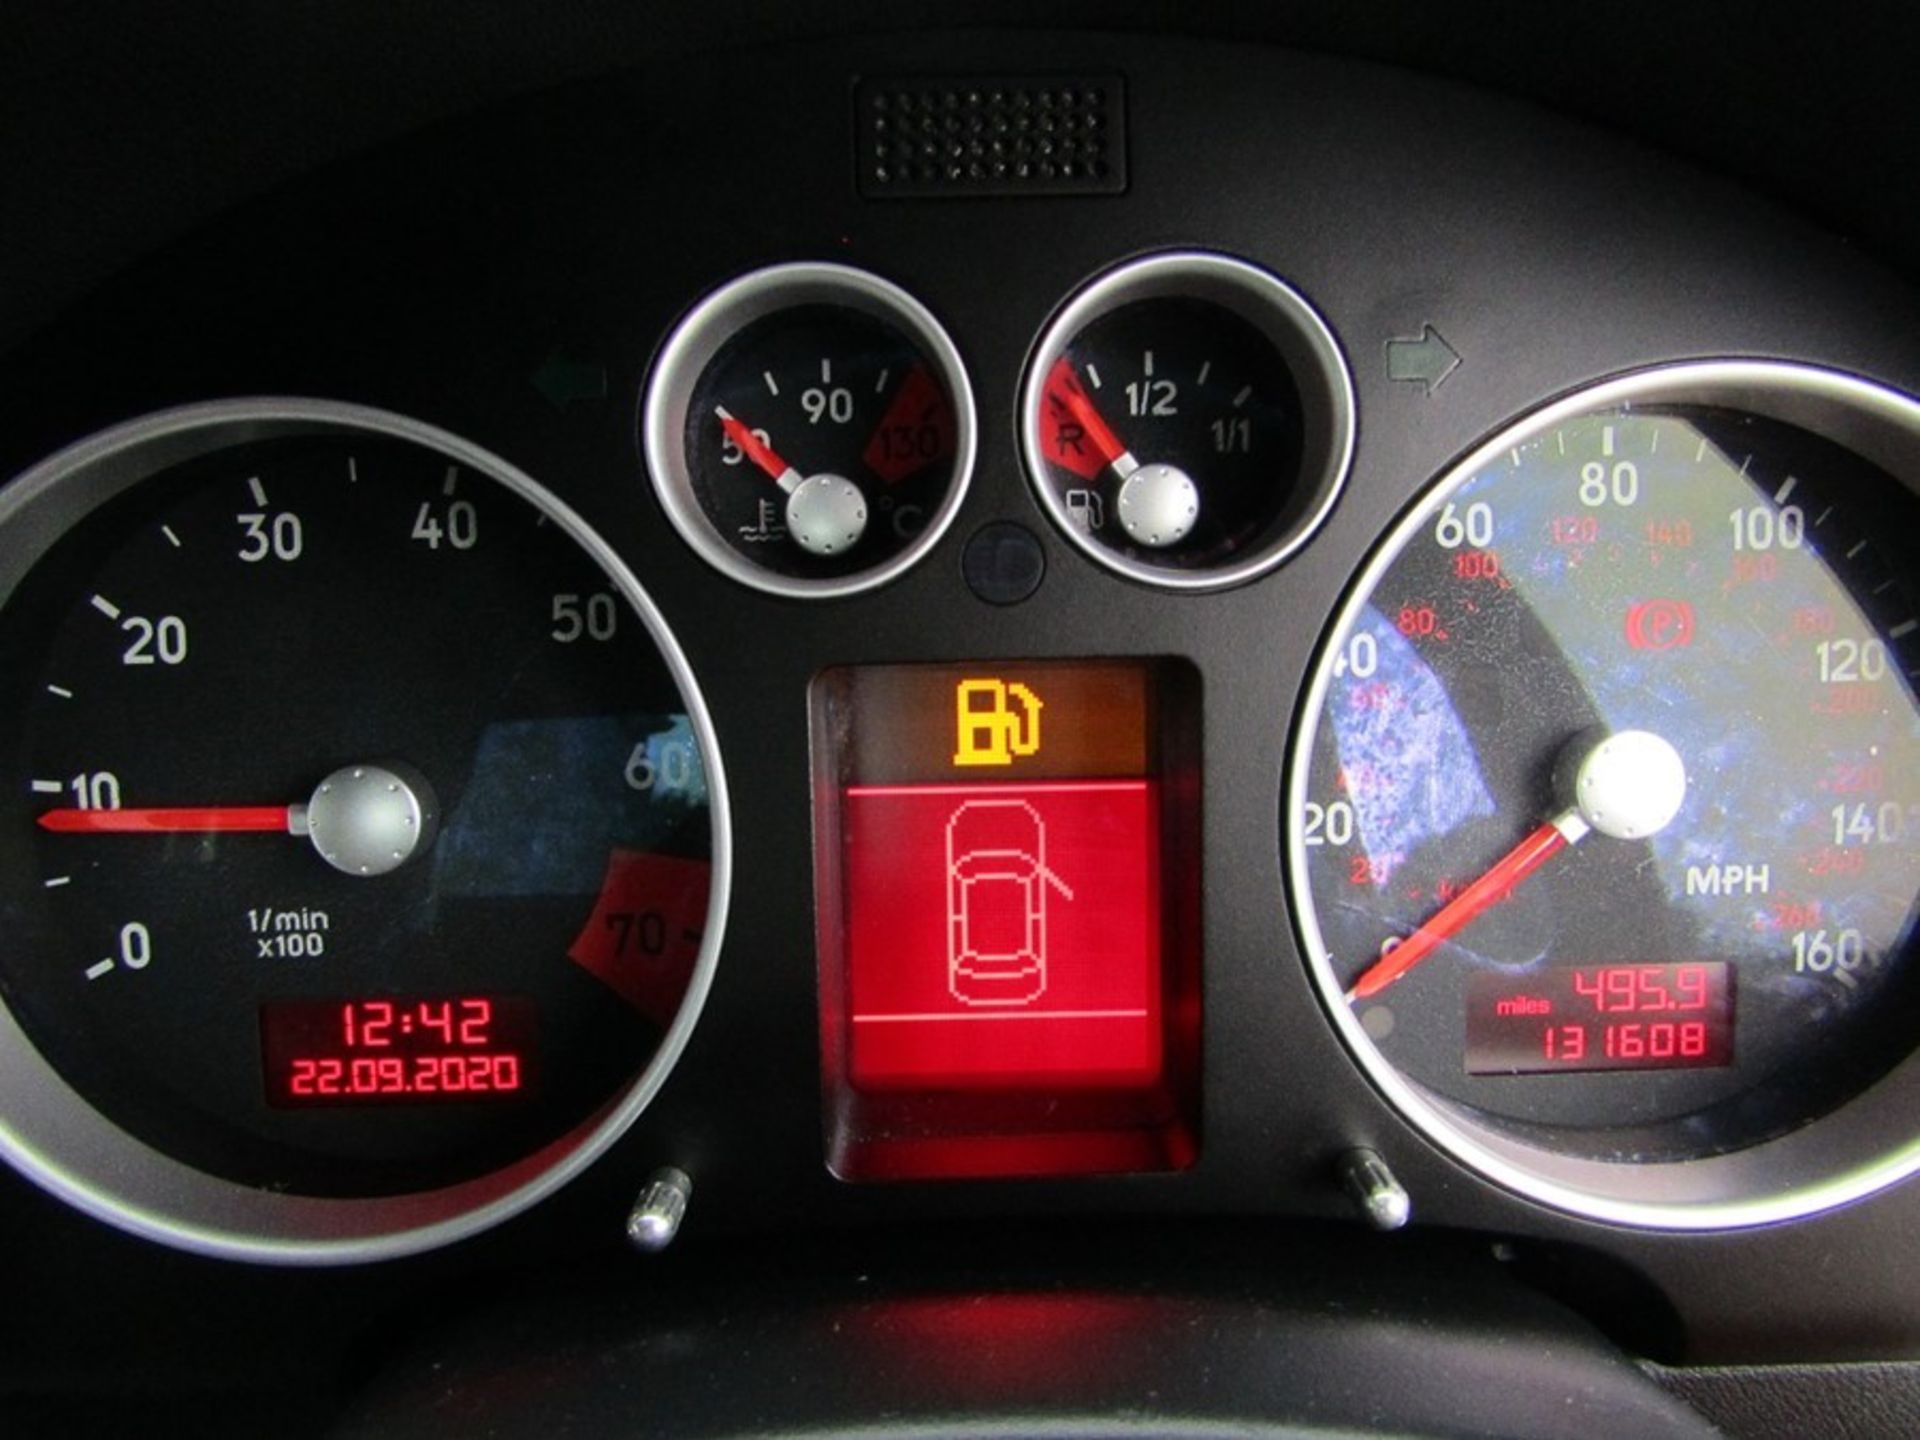 2005 Audi 1.8i Convertible roadster, 131,608 Miles (unchecked) MOT until 01/06/2021, Has part - Image 12 of 16